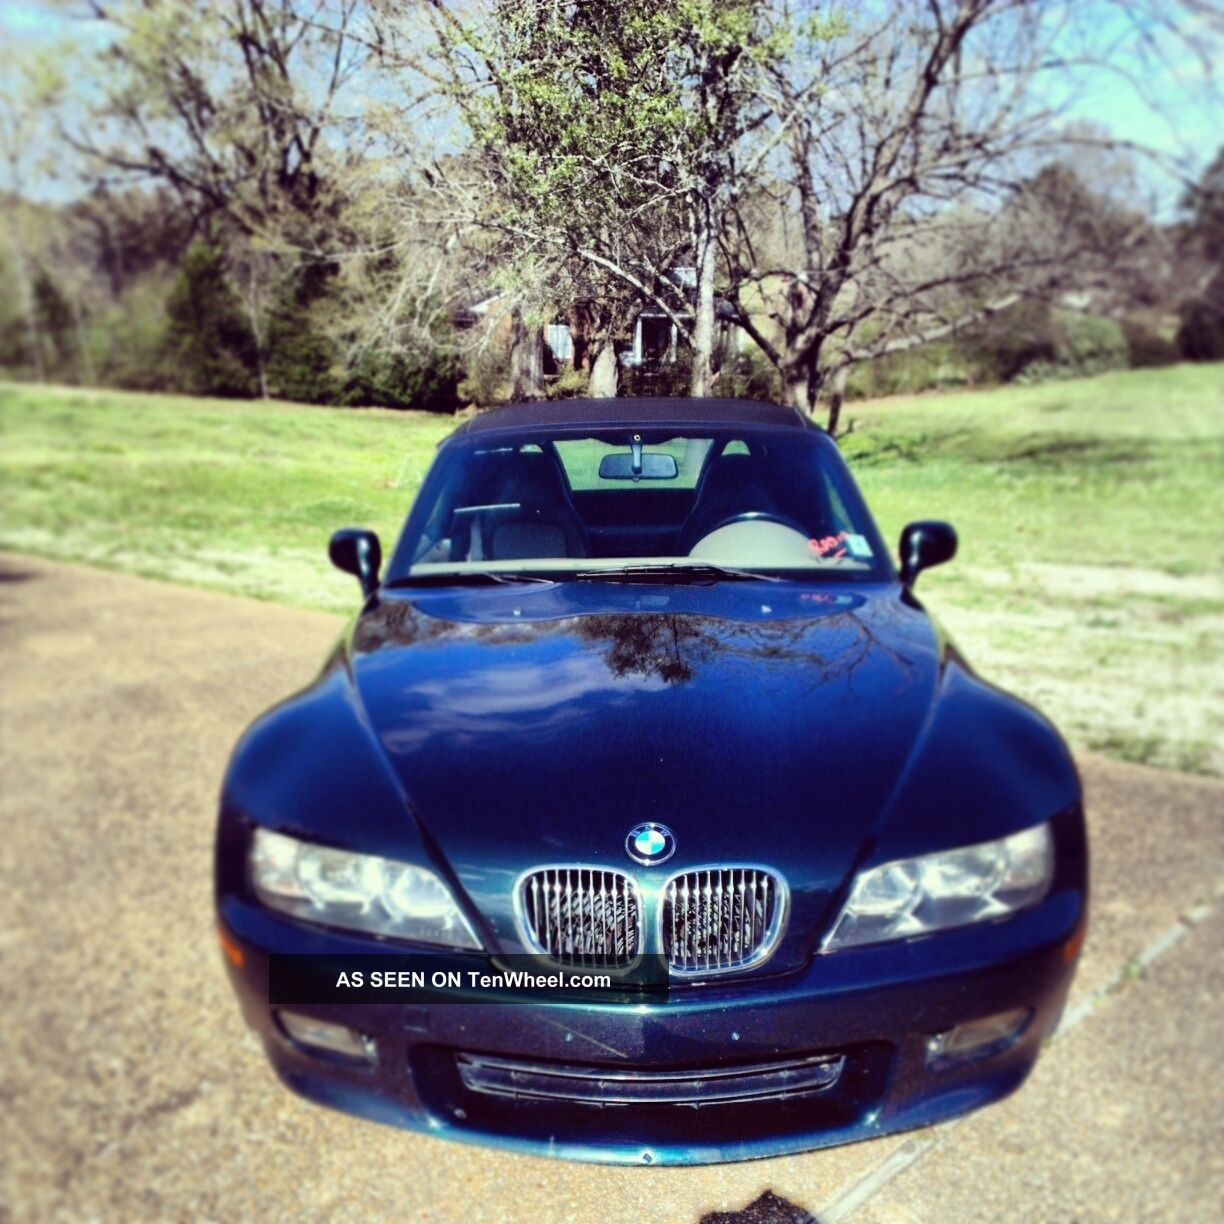 Bmw Z3 Convertible: 3 Day Special 2000 Bmw Z3 Roadster Convertible 2